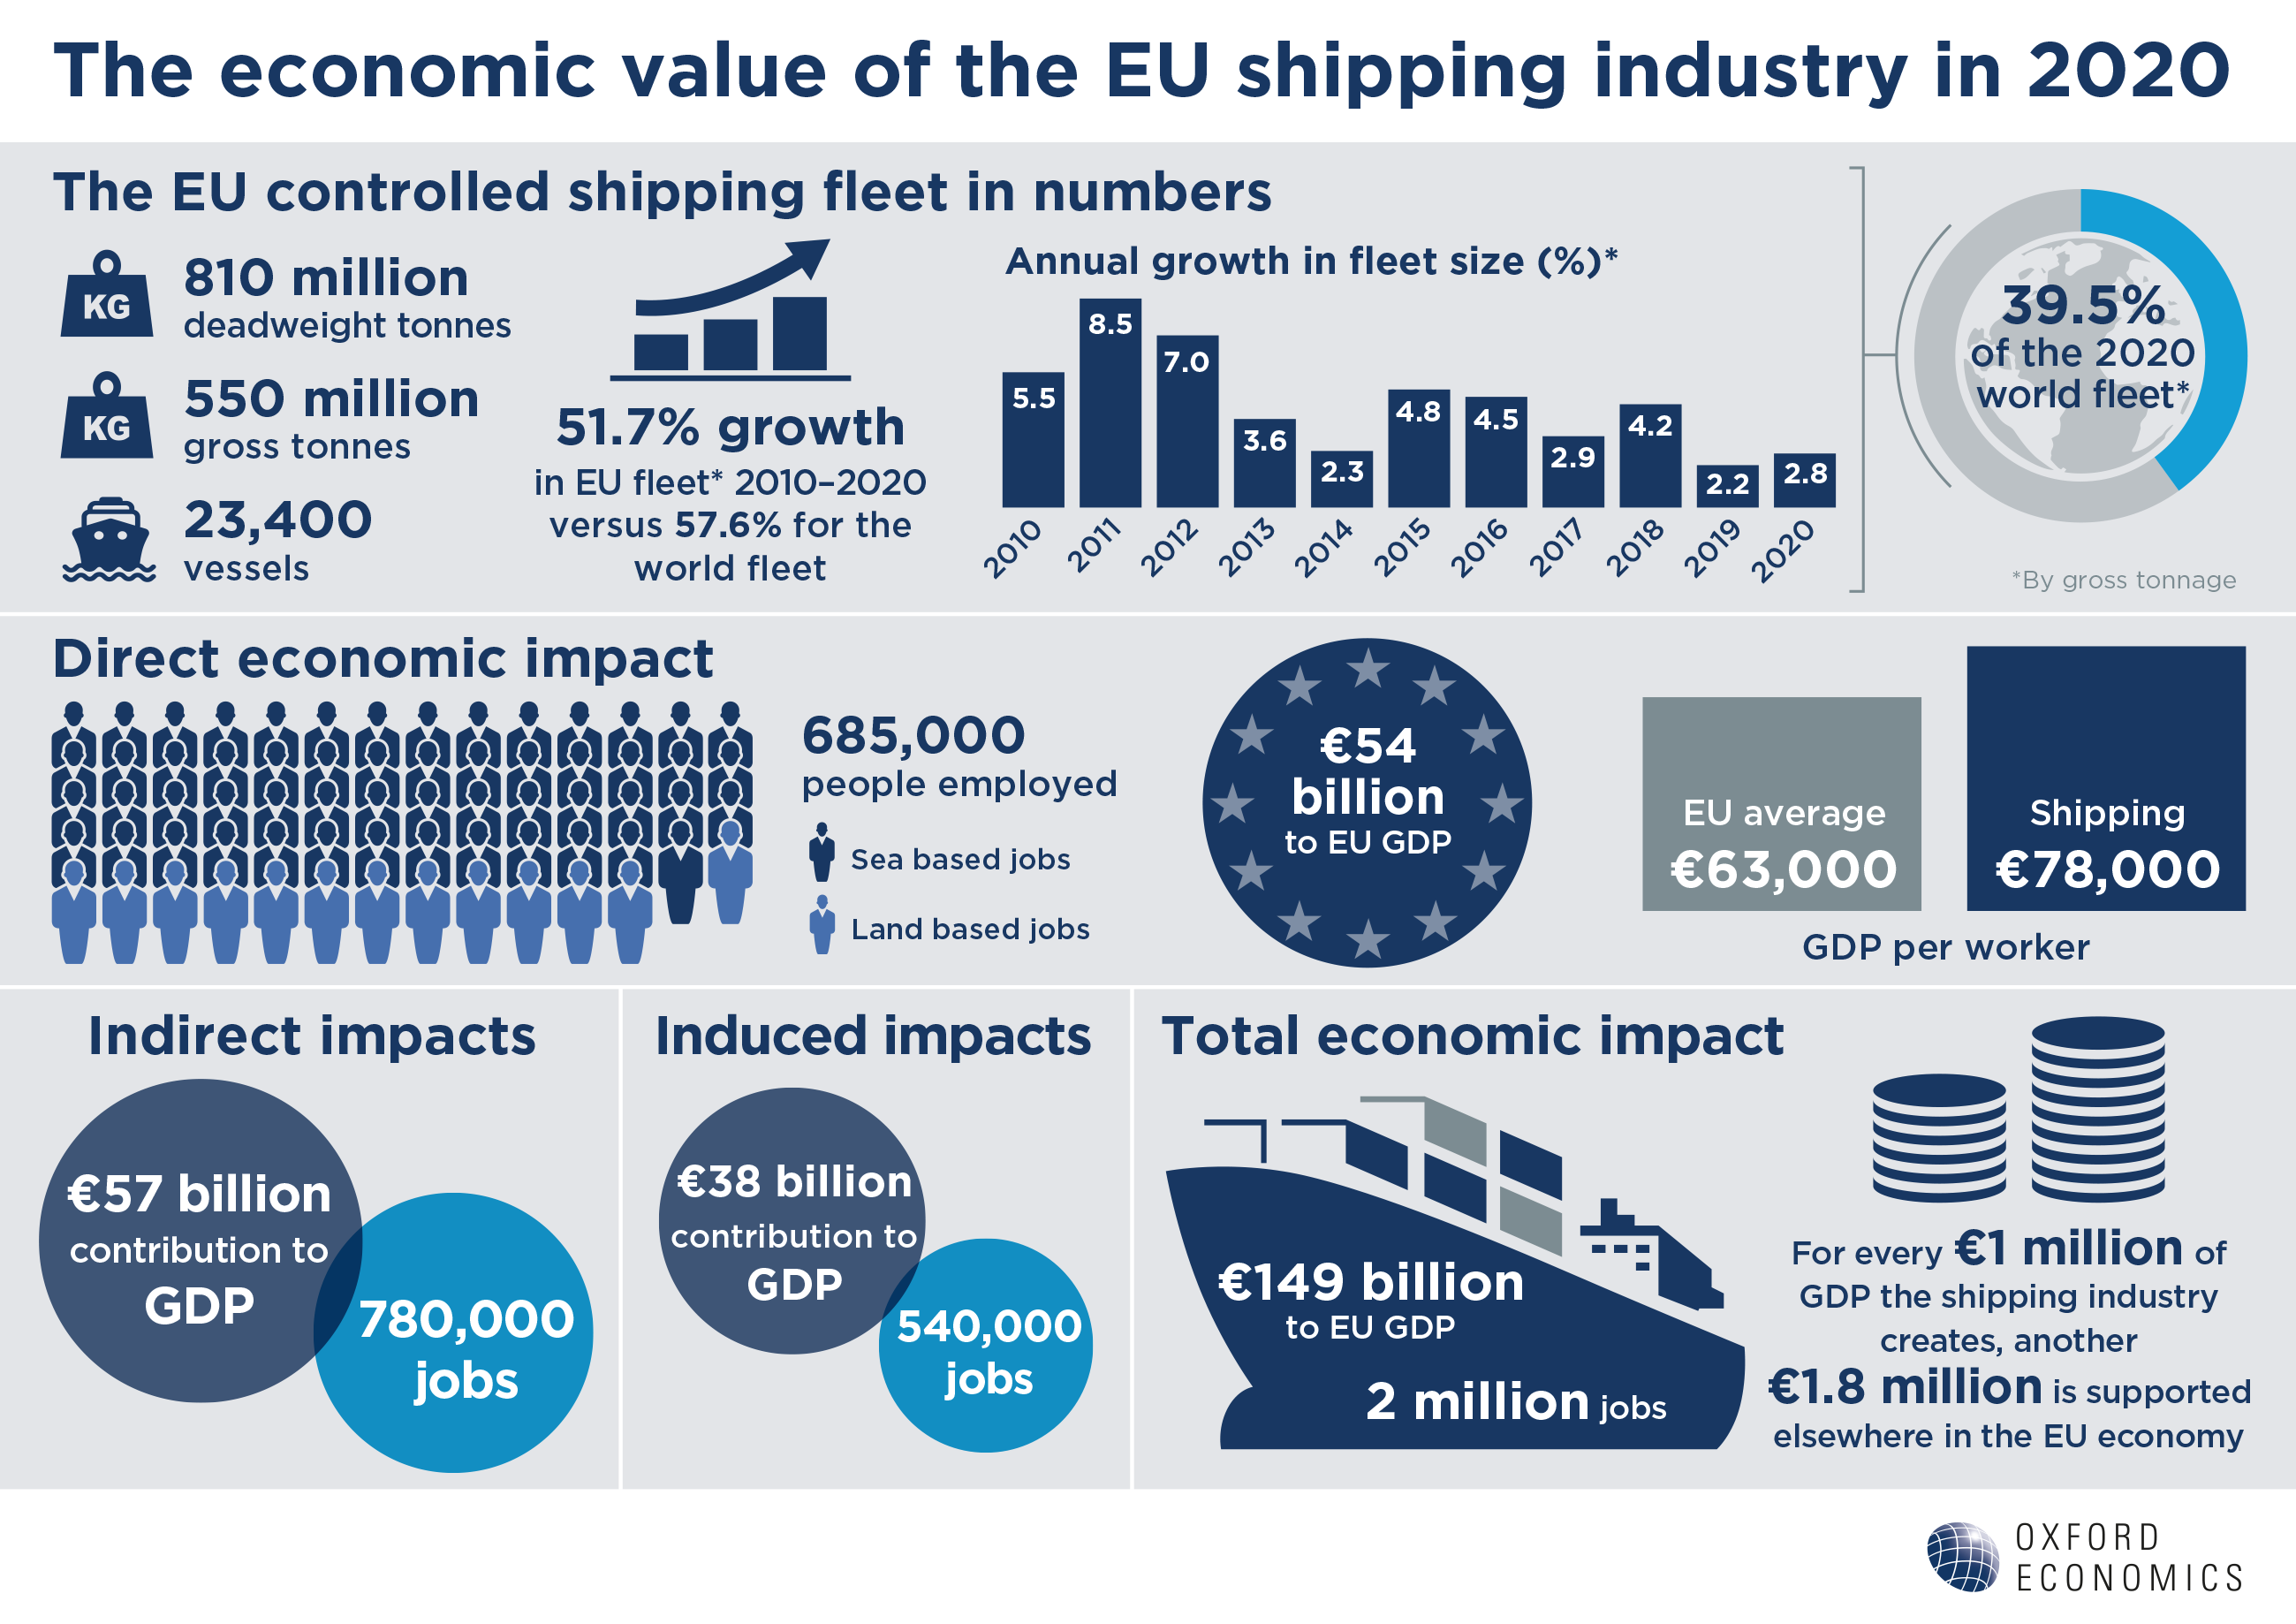 Oxford Economics Infographic: The Economic Value of the EU Shipping Industry, 2020 Update